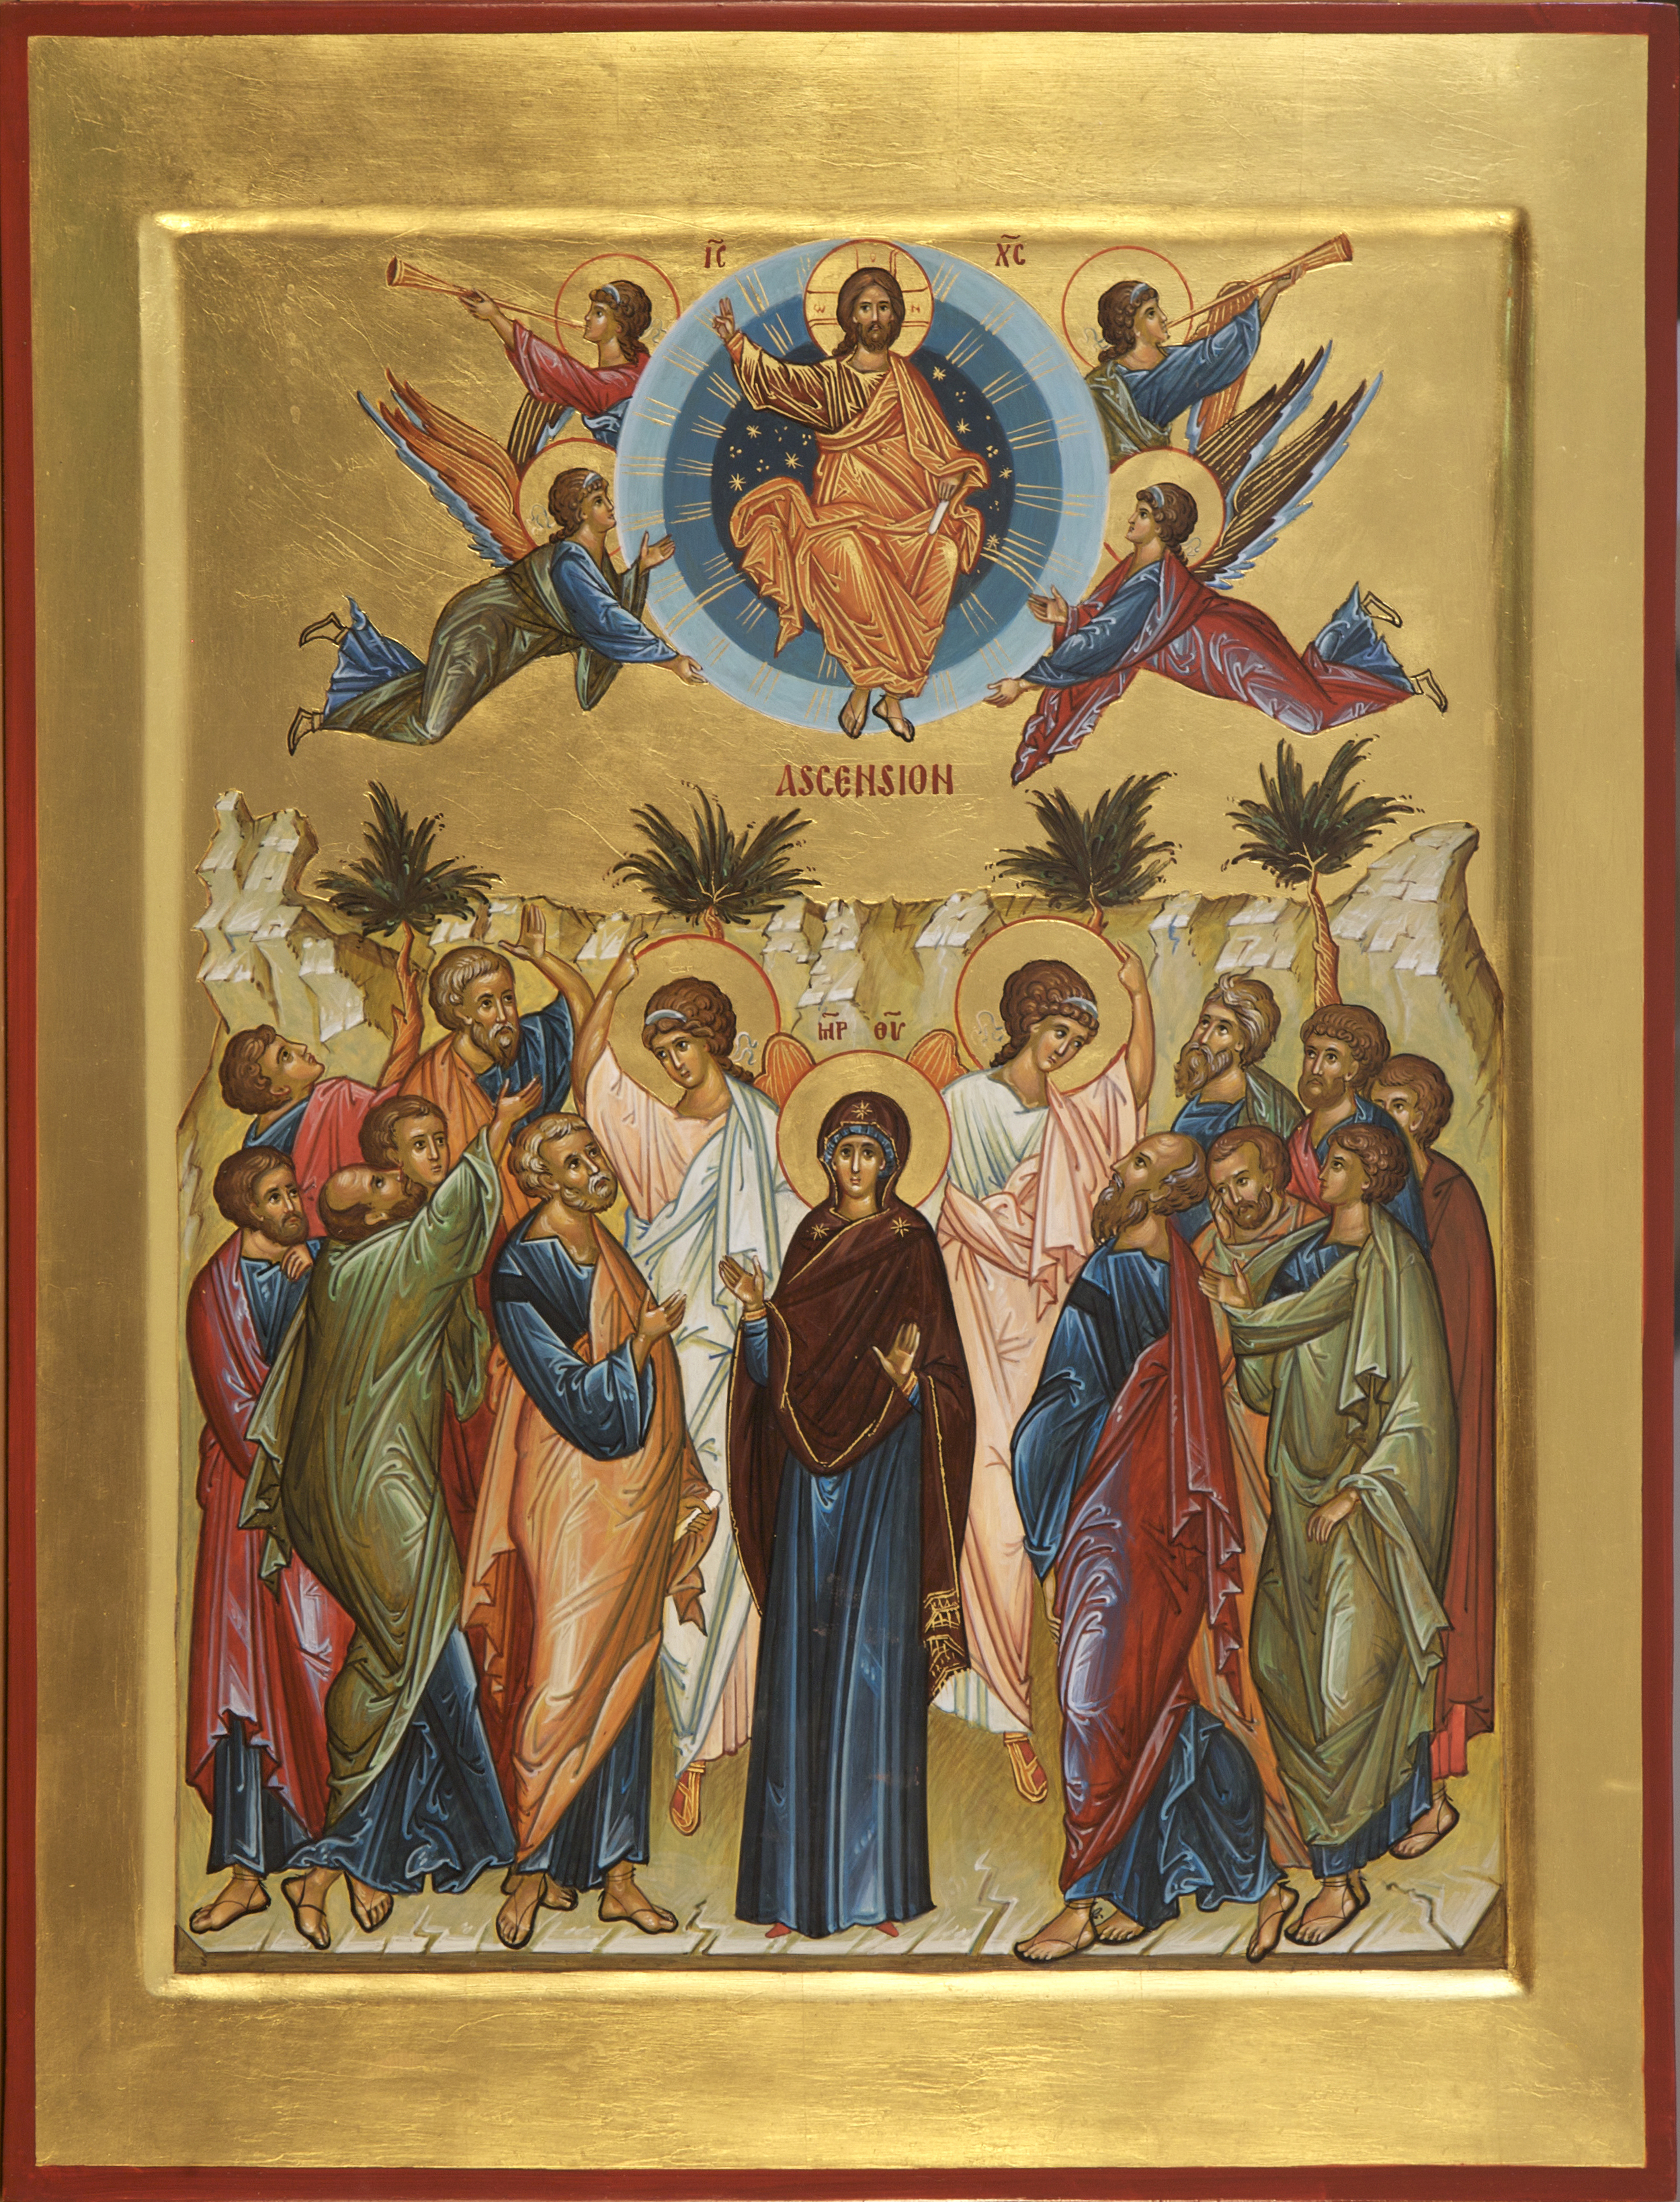 """""""O Christ God, You have ascended in Glory,     Granting Joy to Your disciples by the promise of the Holy Spirit,       Through the blessing they were assured,     That You are the Son of God,   the Redeemer of the World!"""""""